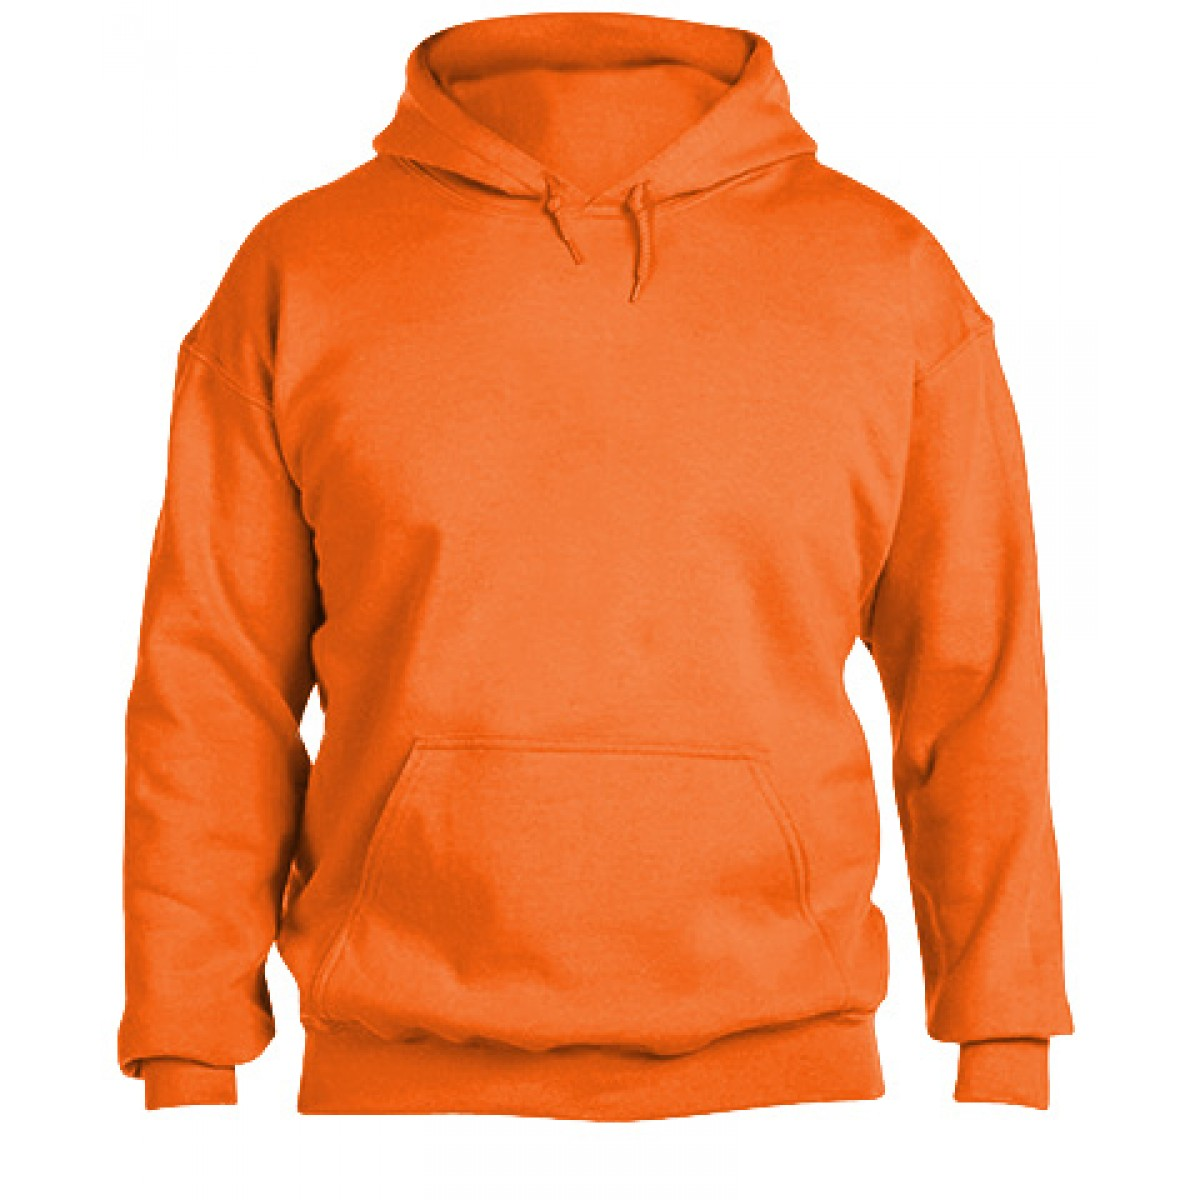 Hooded Sweatshirt 50/50 Heavy Blend-Safety Orange-XS